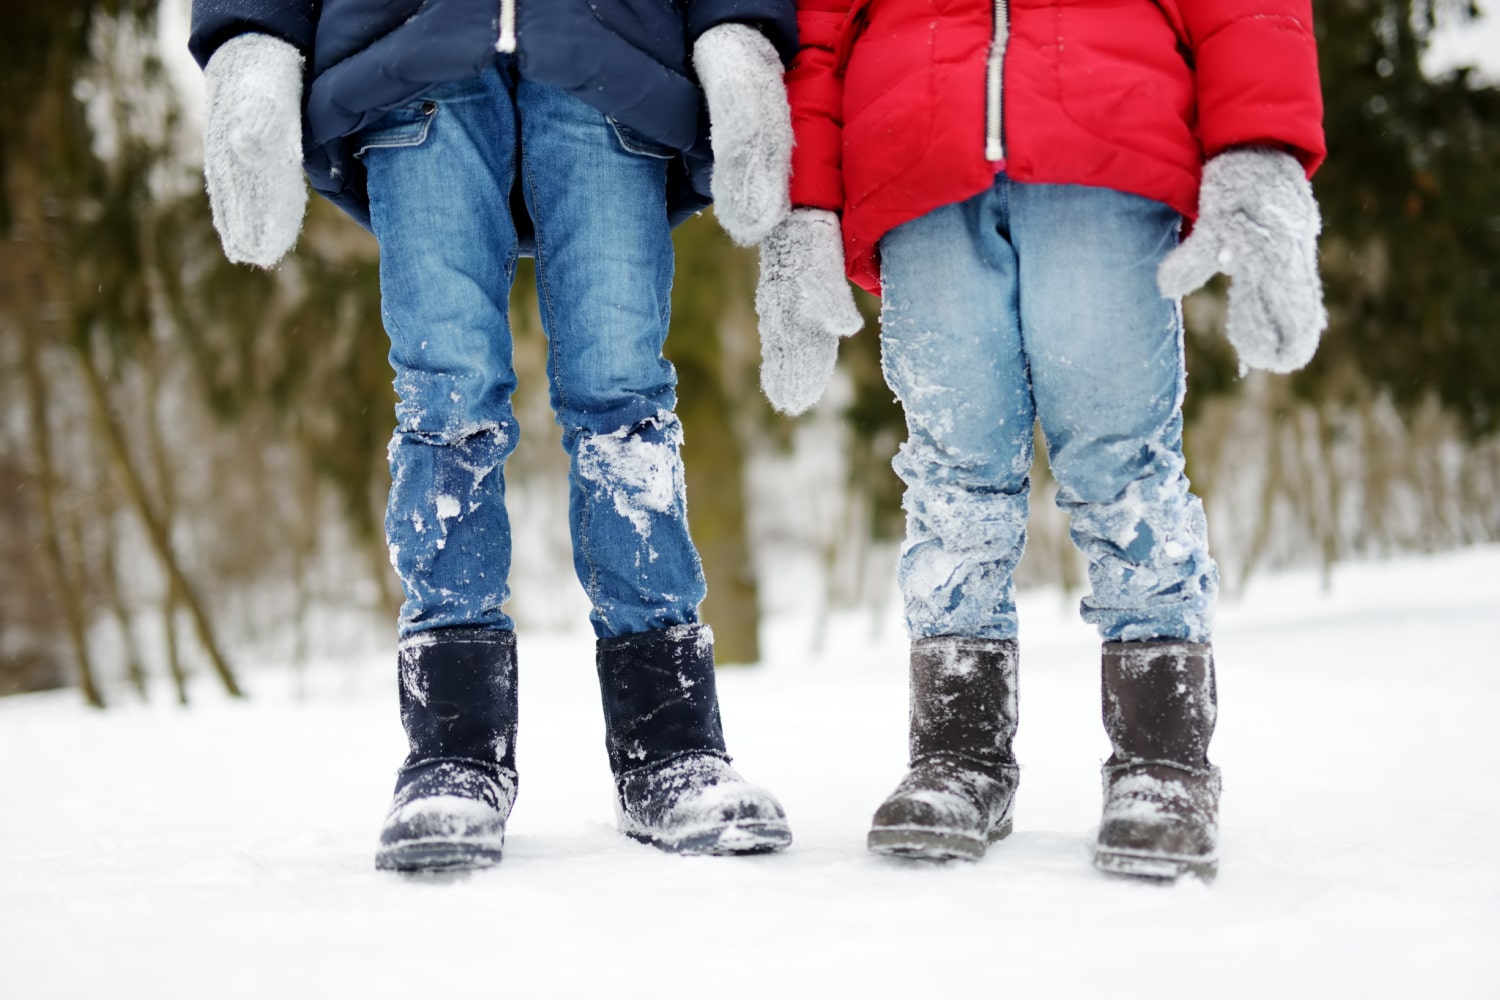 Waist-down photo of two kids in Uggs snow boots and winter clothes